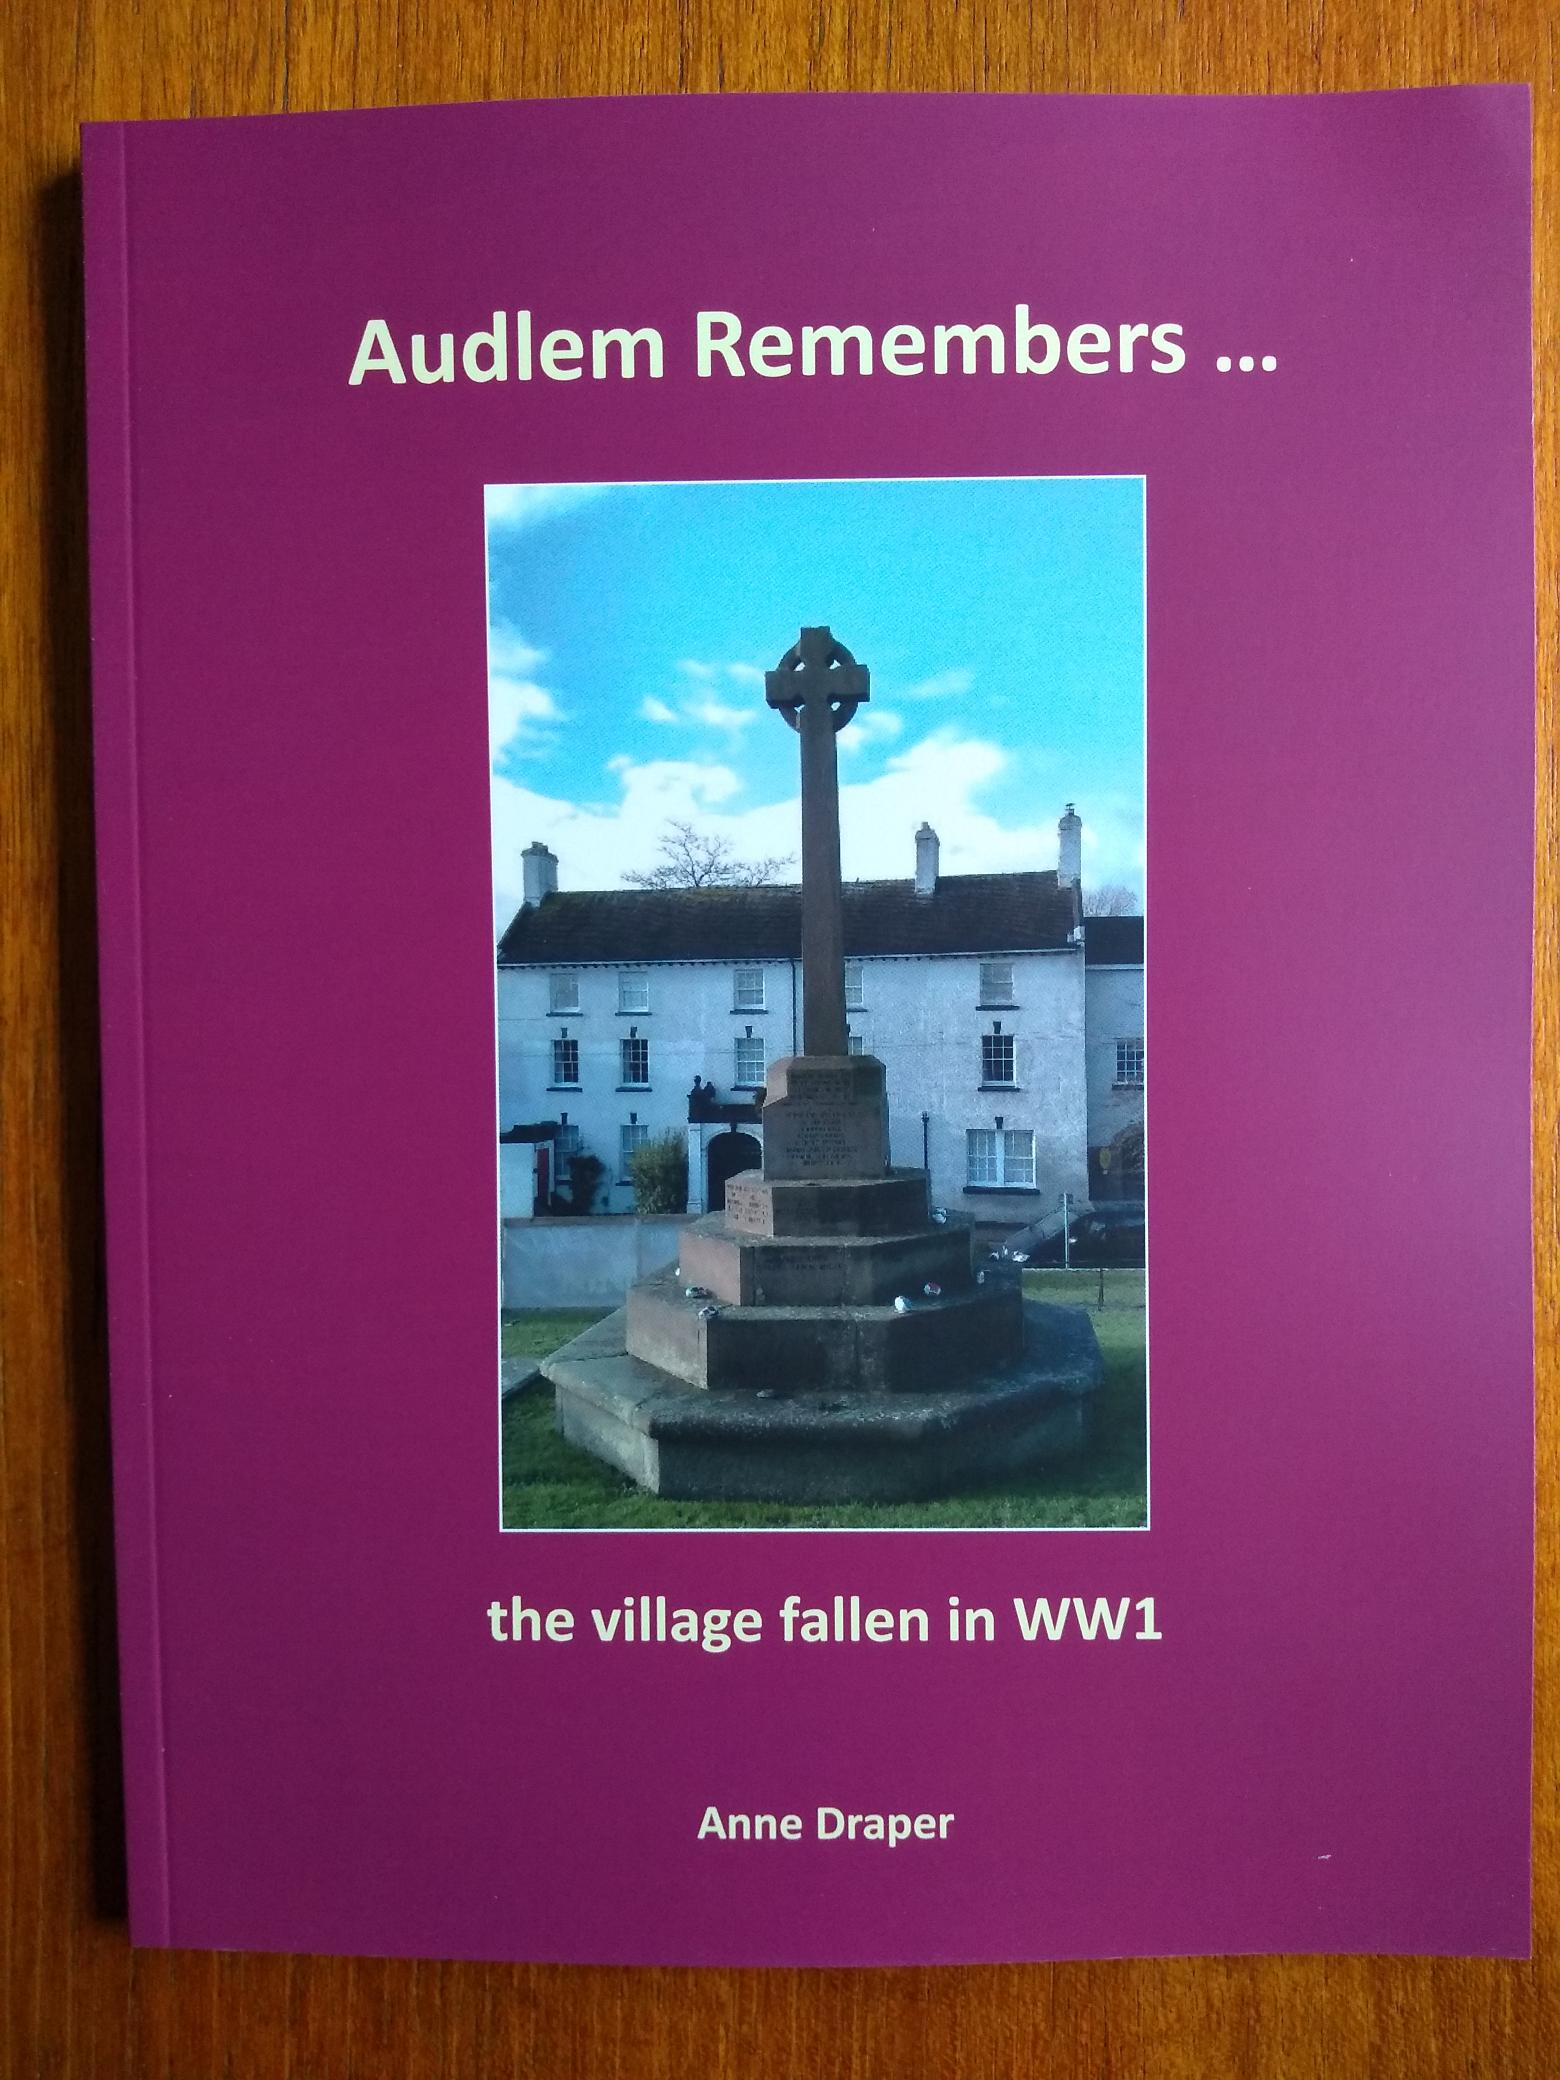 Image of Book Cover Audlem Remembers